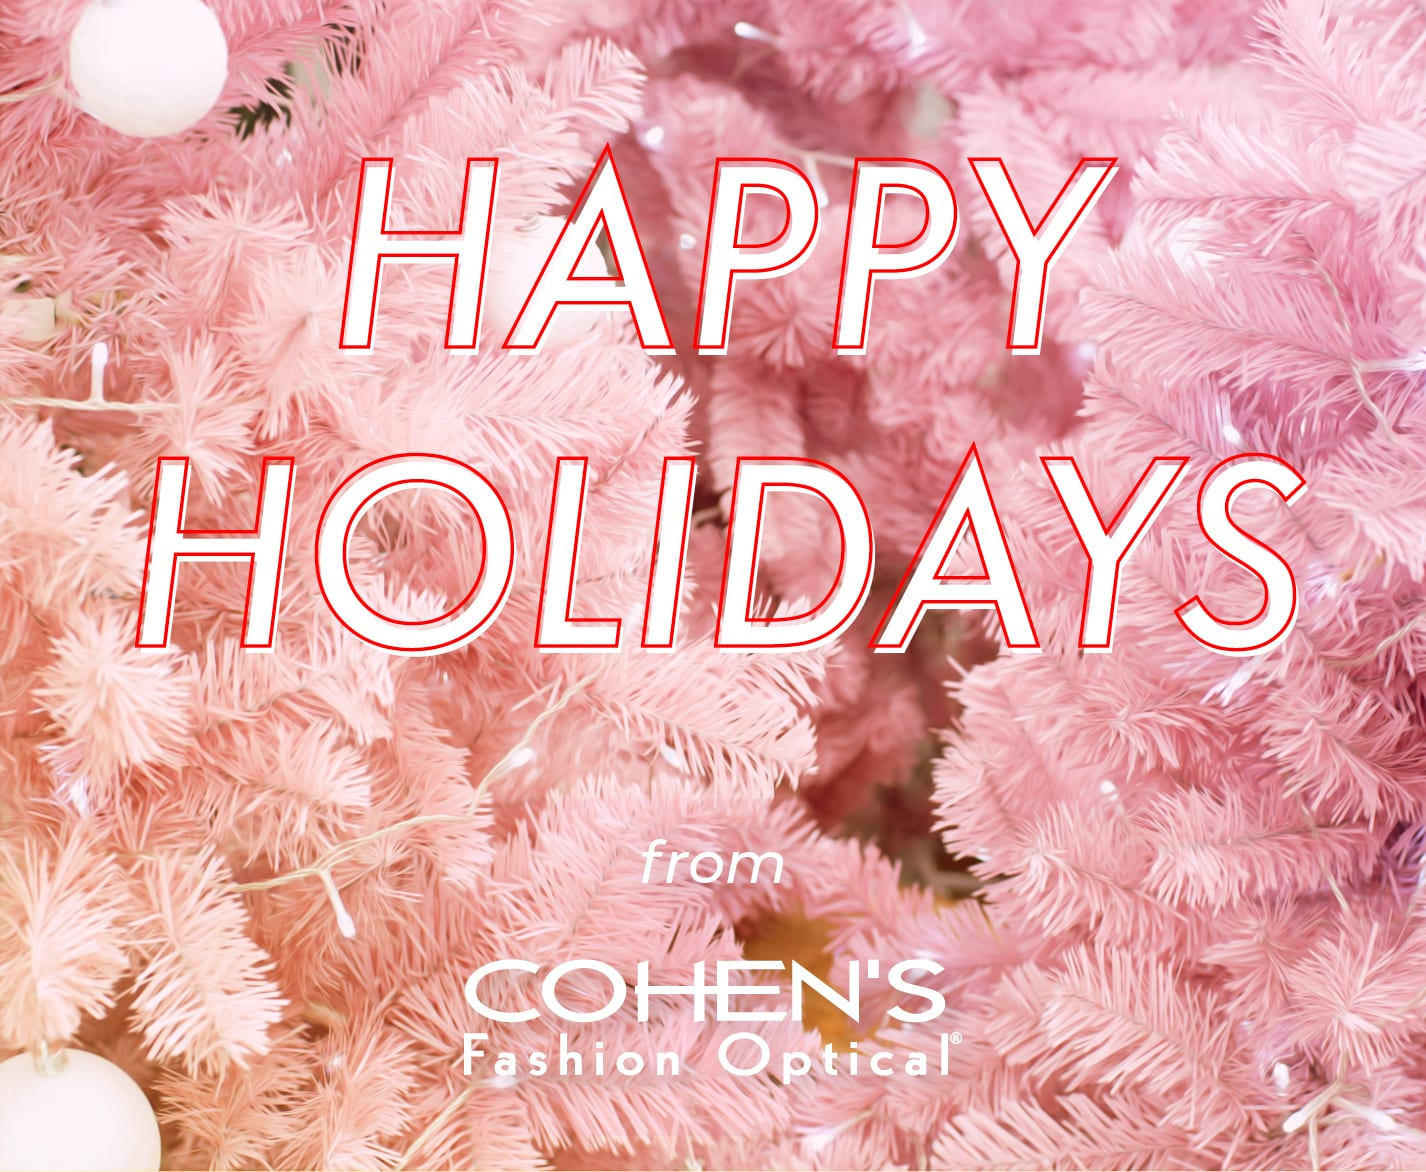 Some Holiday Inspiration!